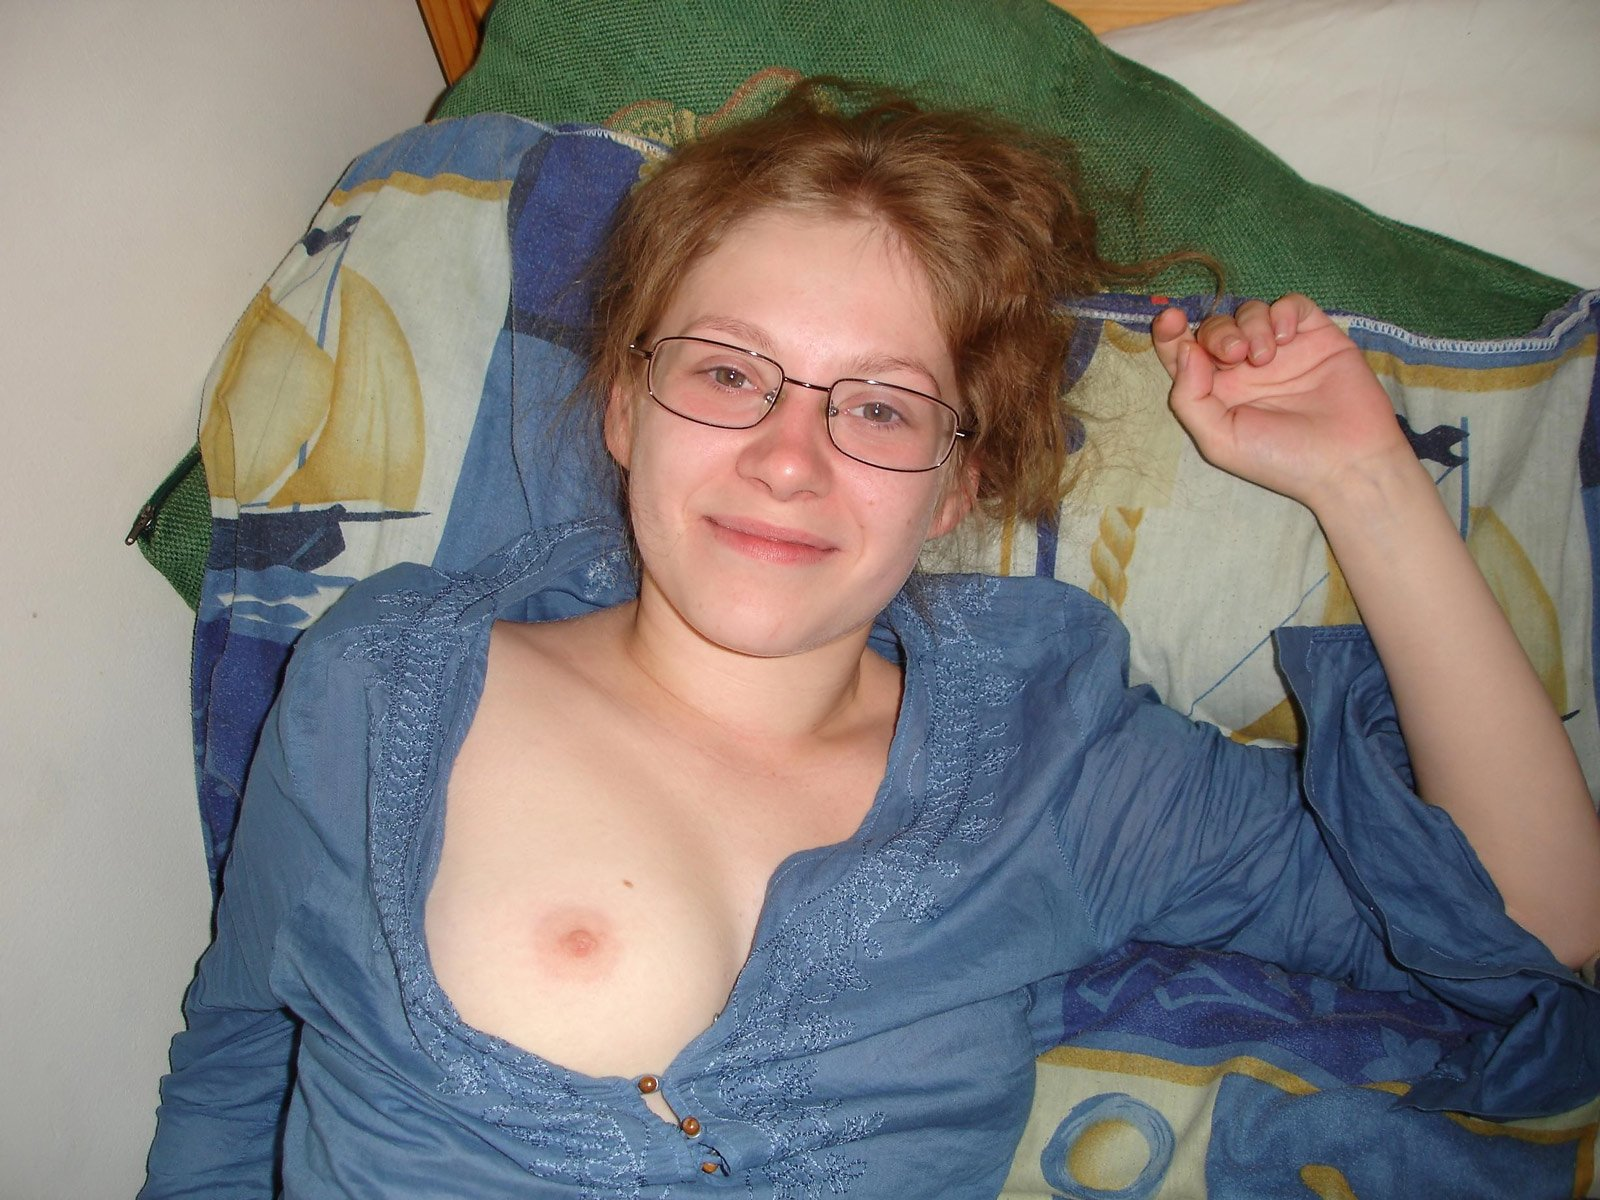 mature homemade women